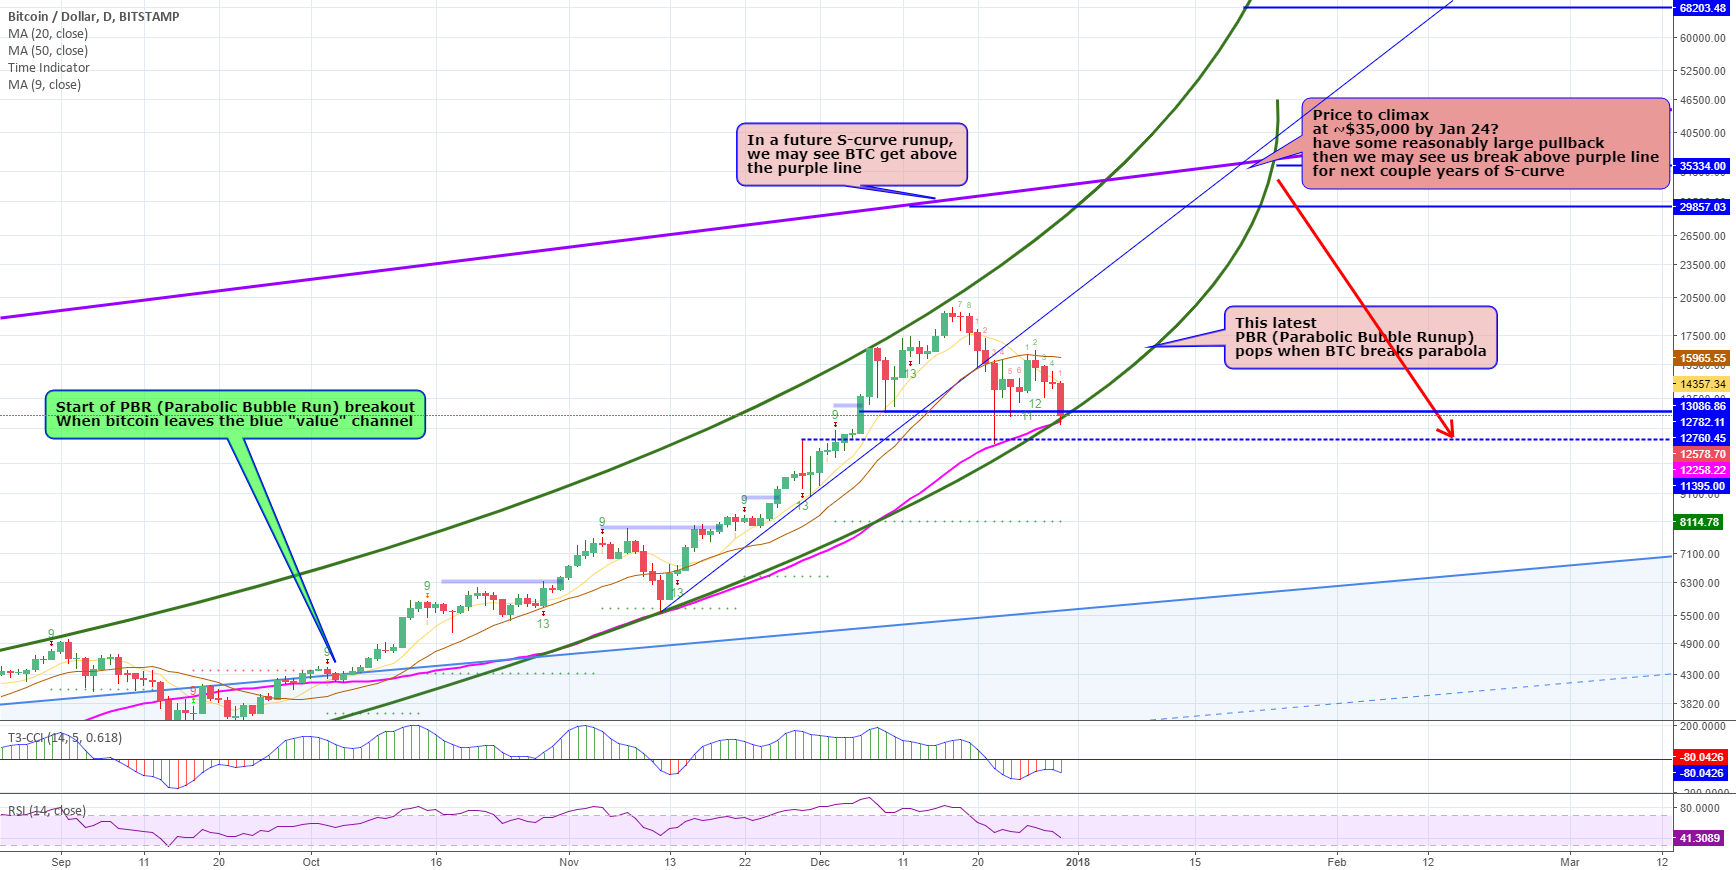 Bitcoin support on 50 daily MA and green parabolic support